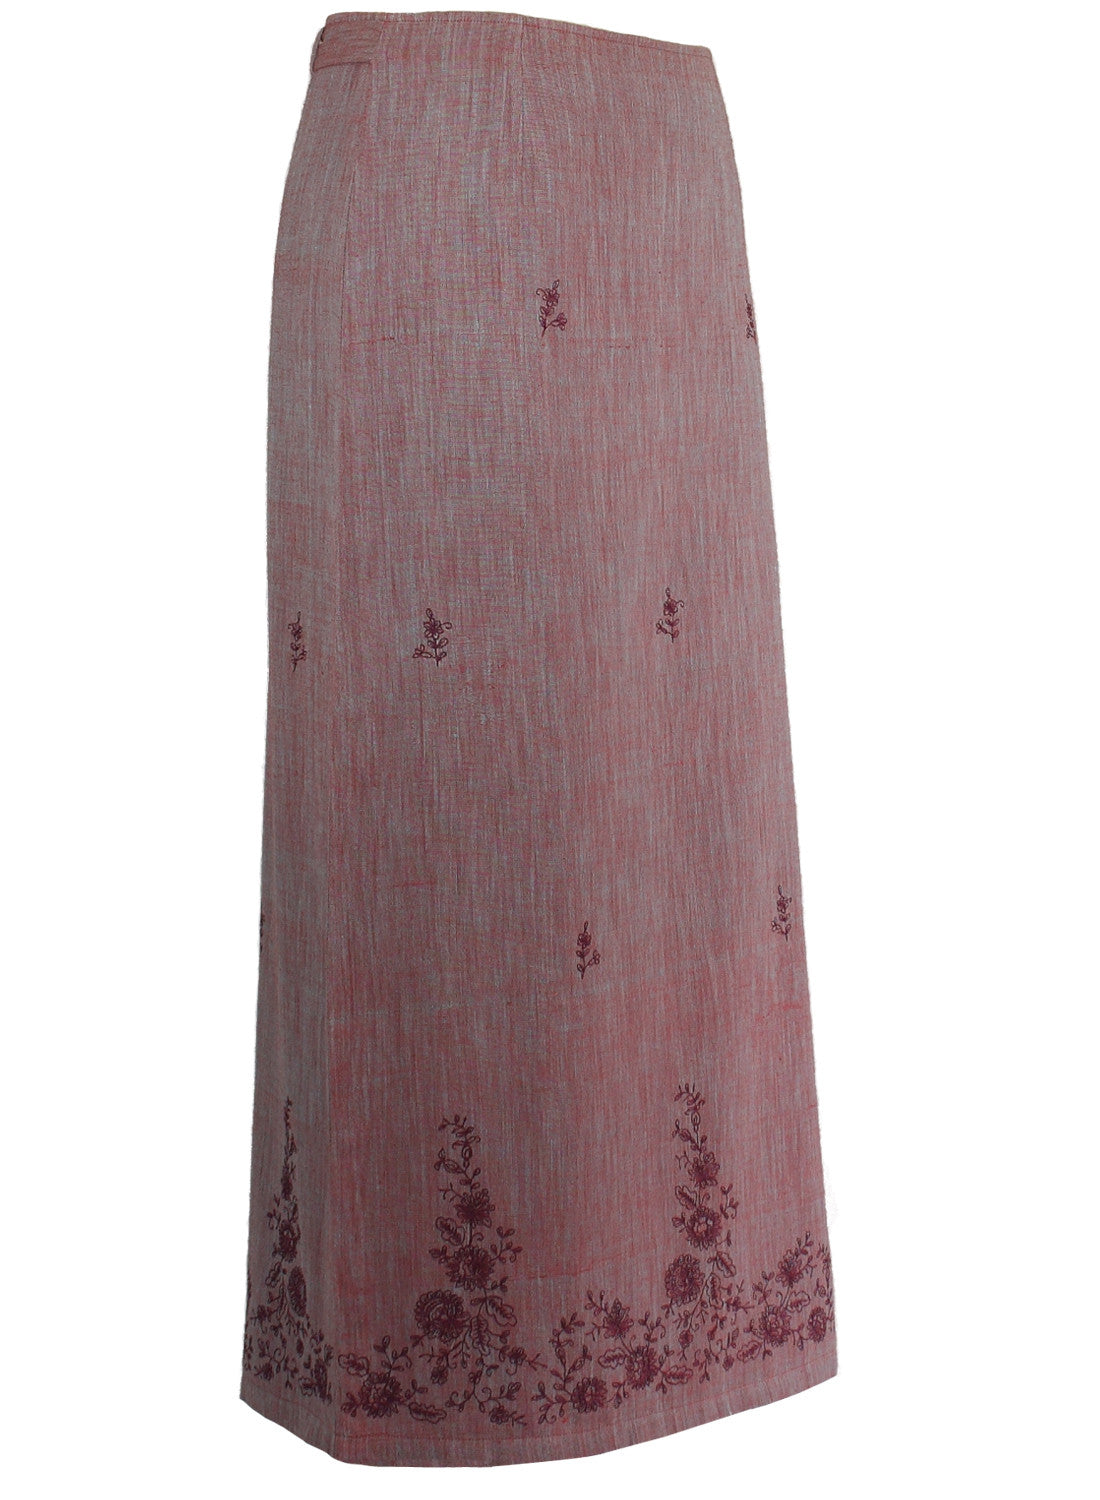 Long Skirt in purple cotton khadi with contrast floral Embroidery - MINC ecofashion